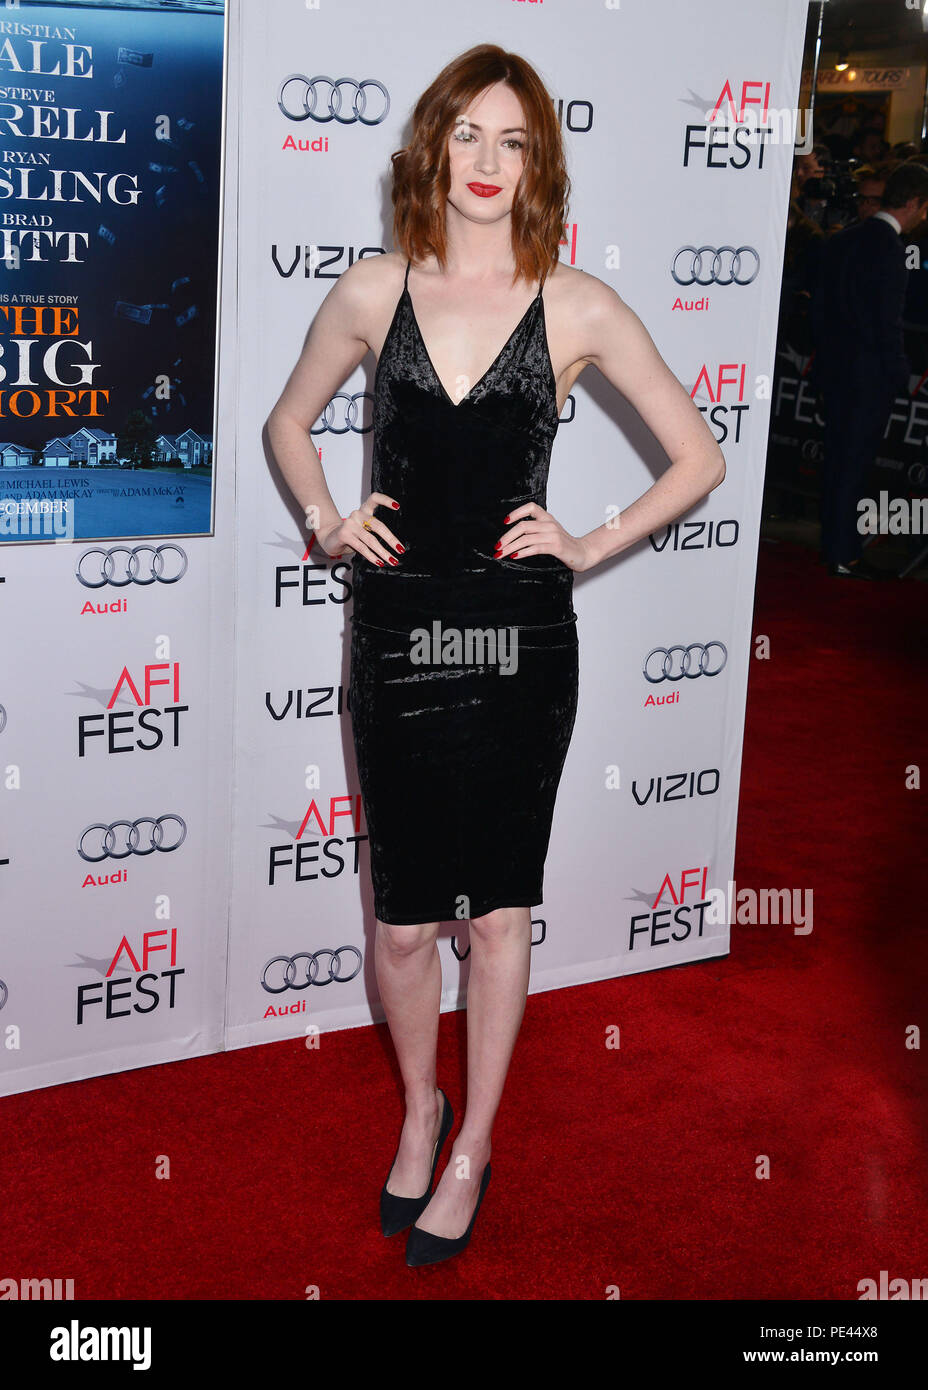 0e3c7abaadb1 Karen Gillan 056 at the Big Short Premiere at the TCL Chinese Theatre in Los  Angeles